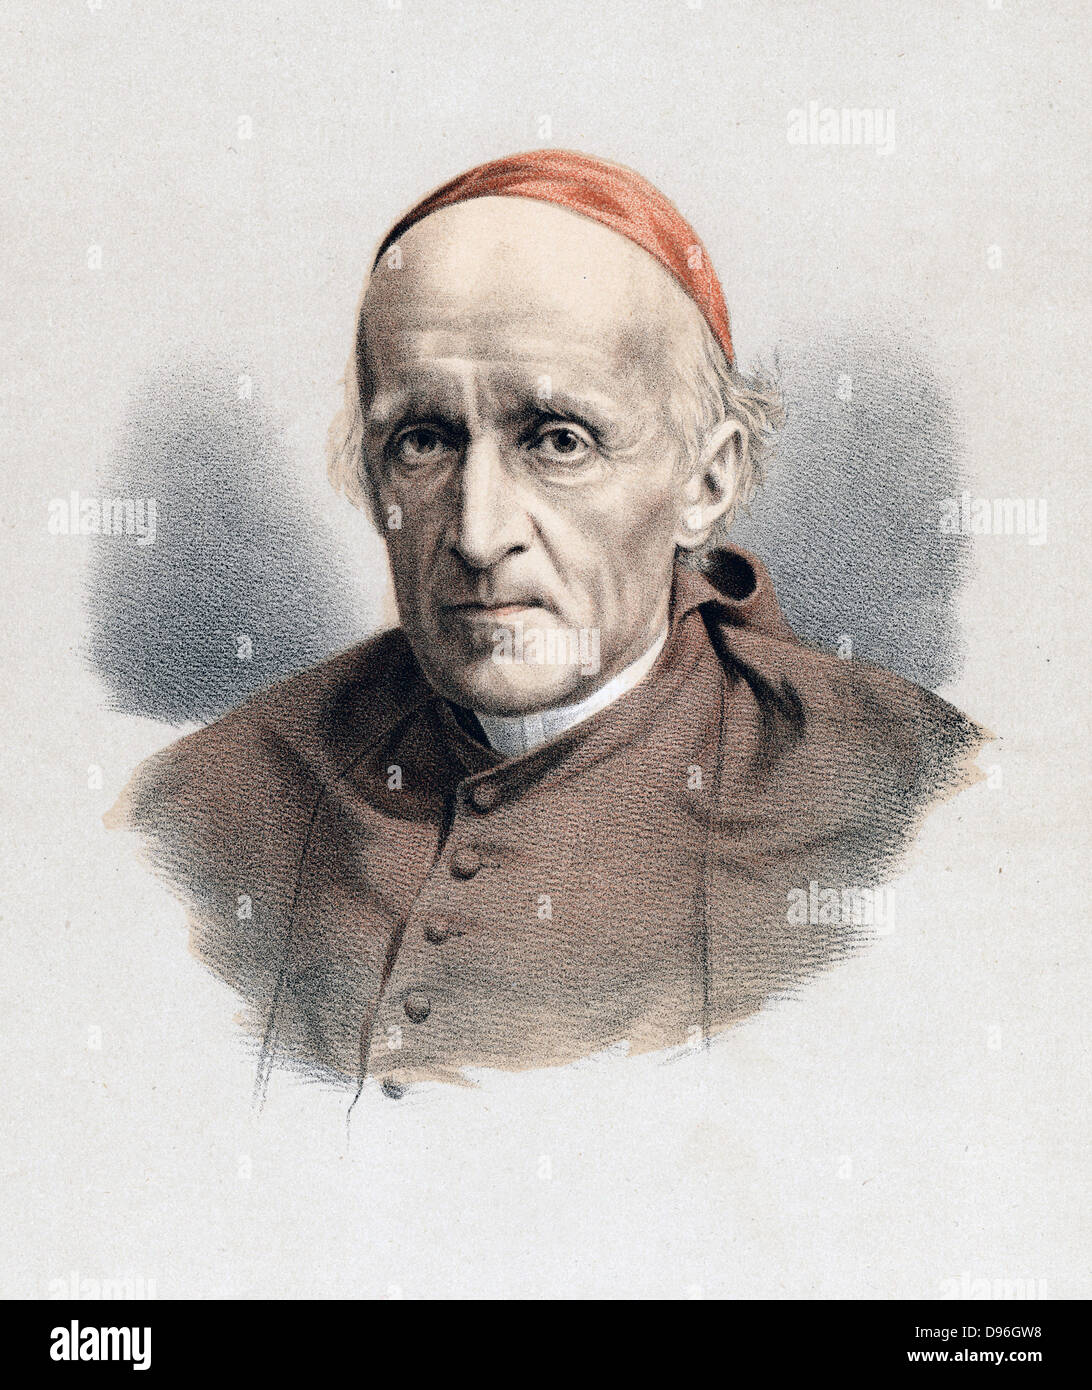 henry edward manning 1809 1892 english r catholic prelate henry edward manning 1809 1892 english r catholic prelate c1880 after graduating from oxford manning was ordained as